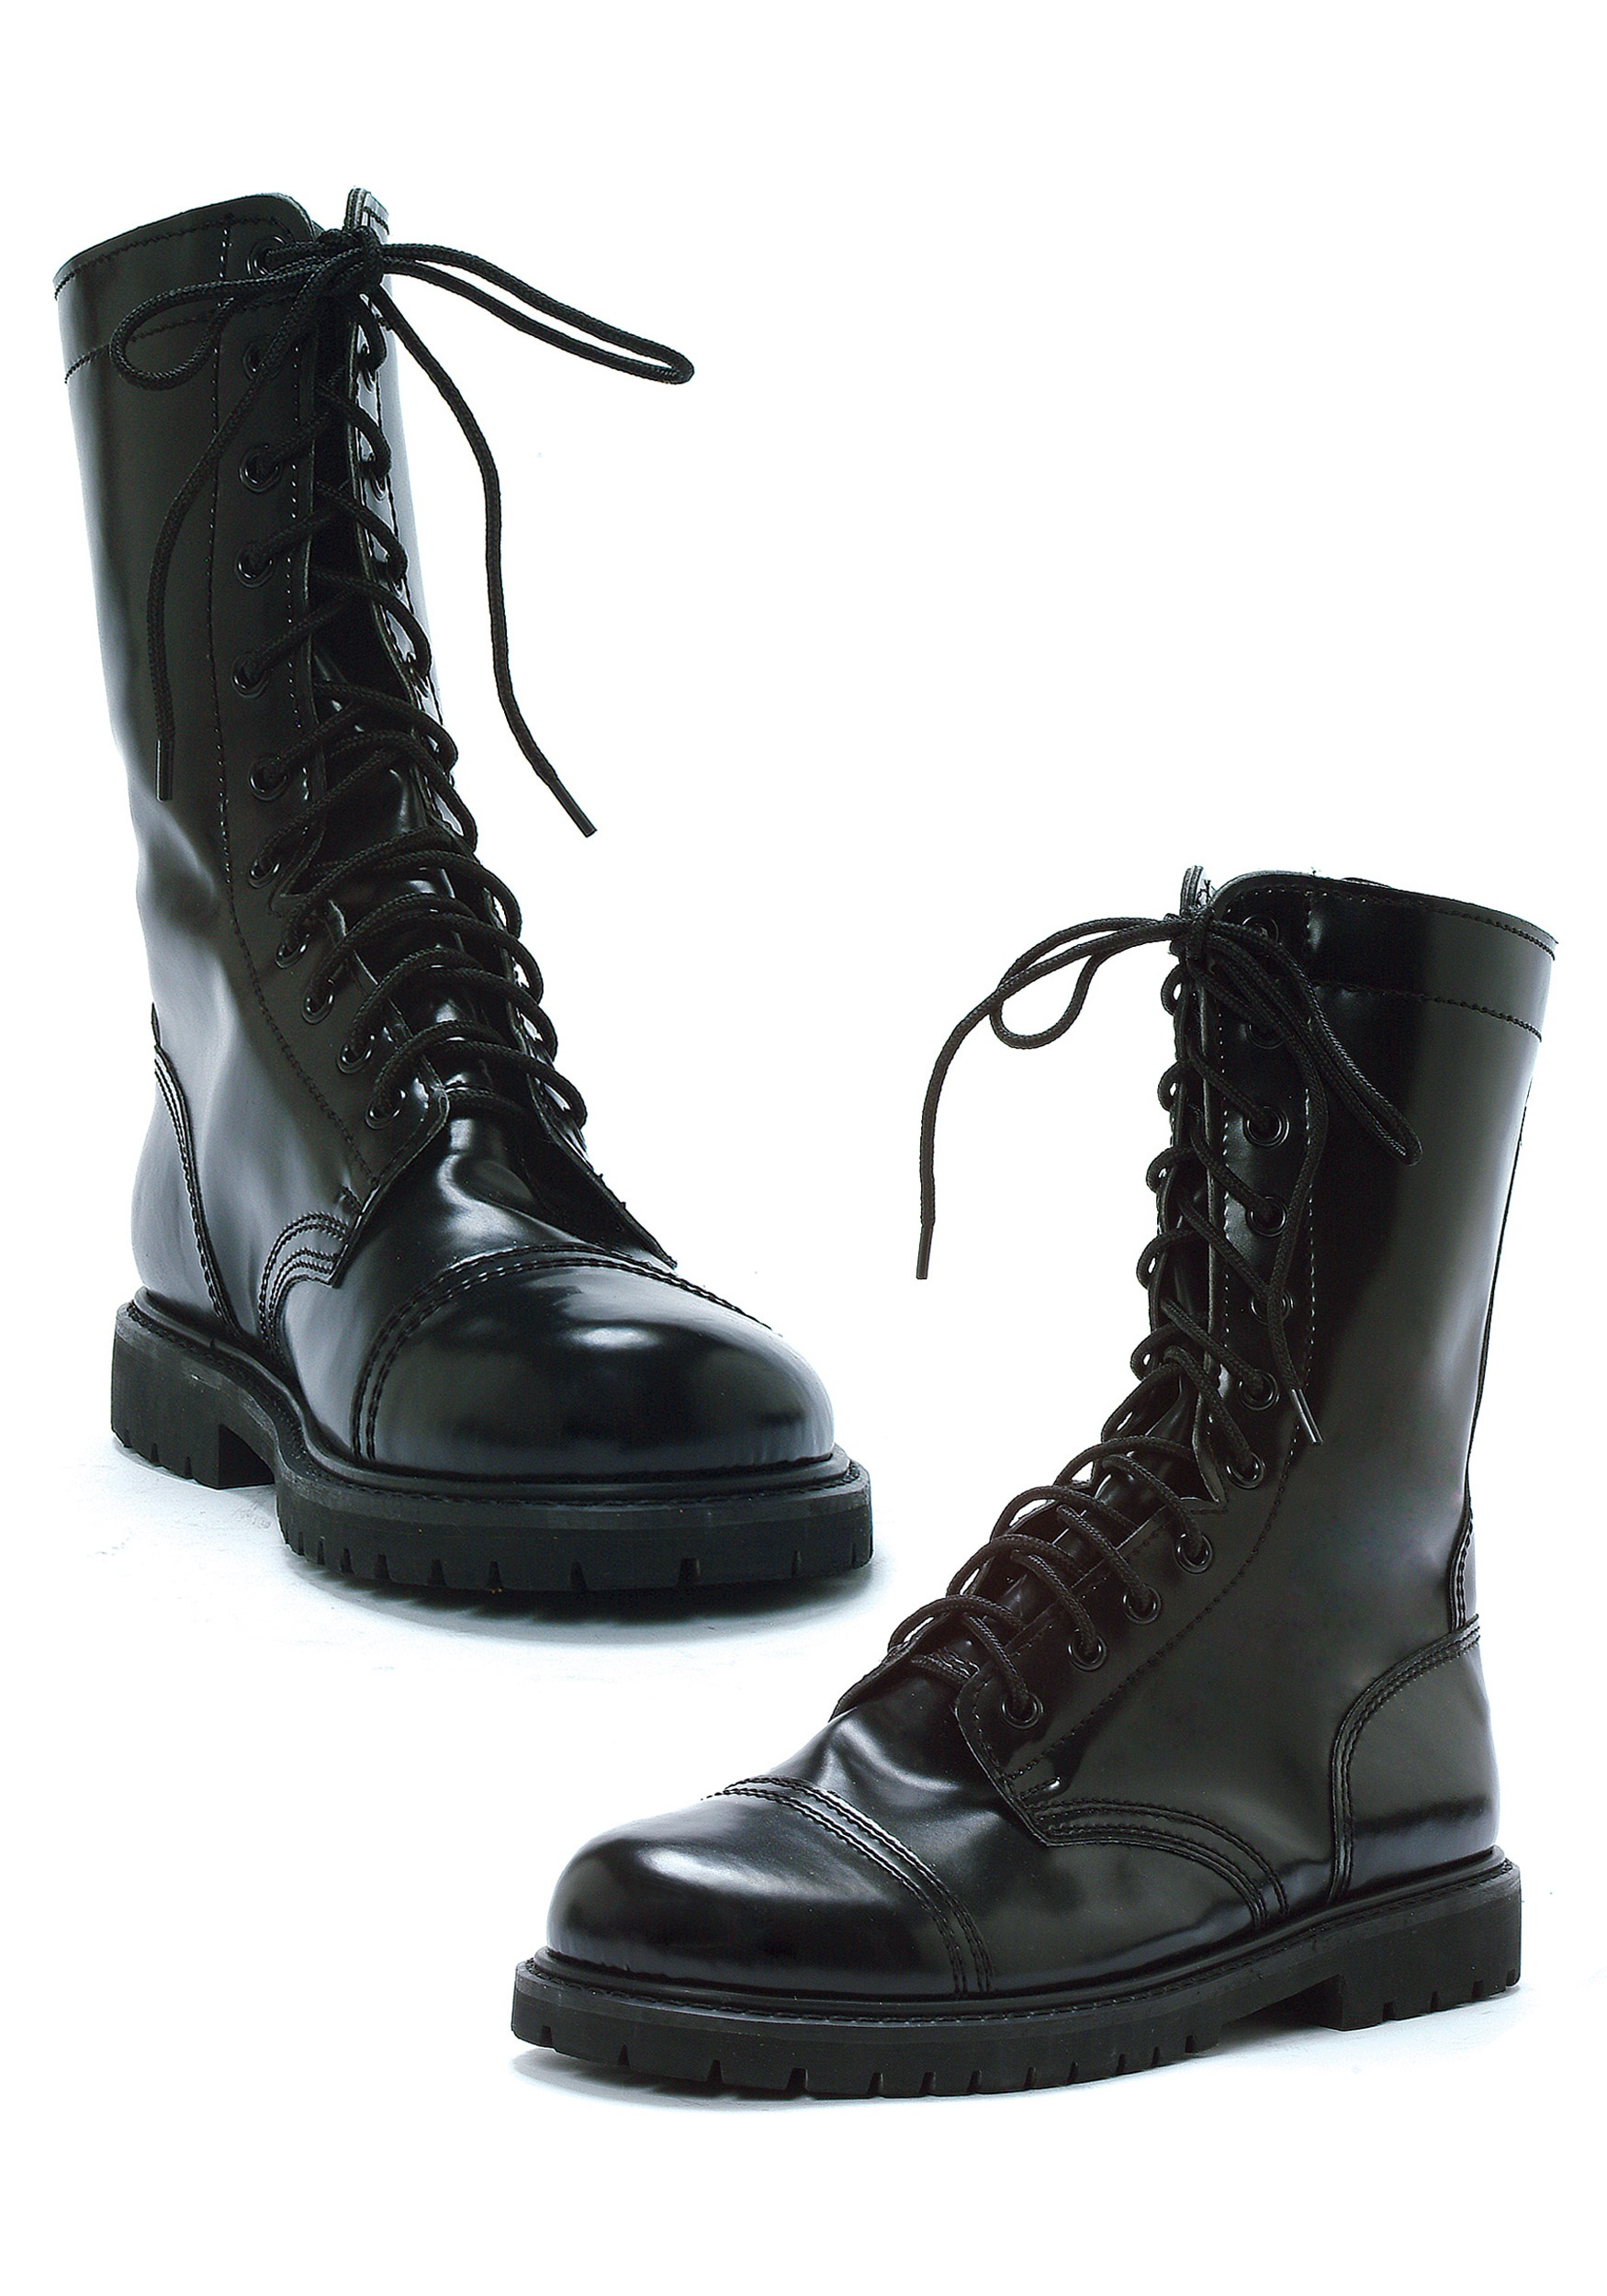 Adult Army Black Combat Boots - Mens Military Soldier Boots